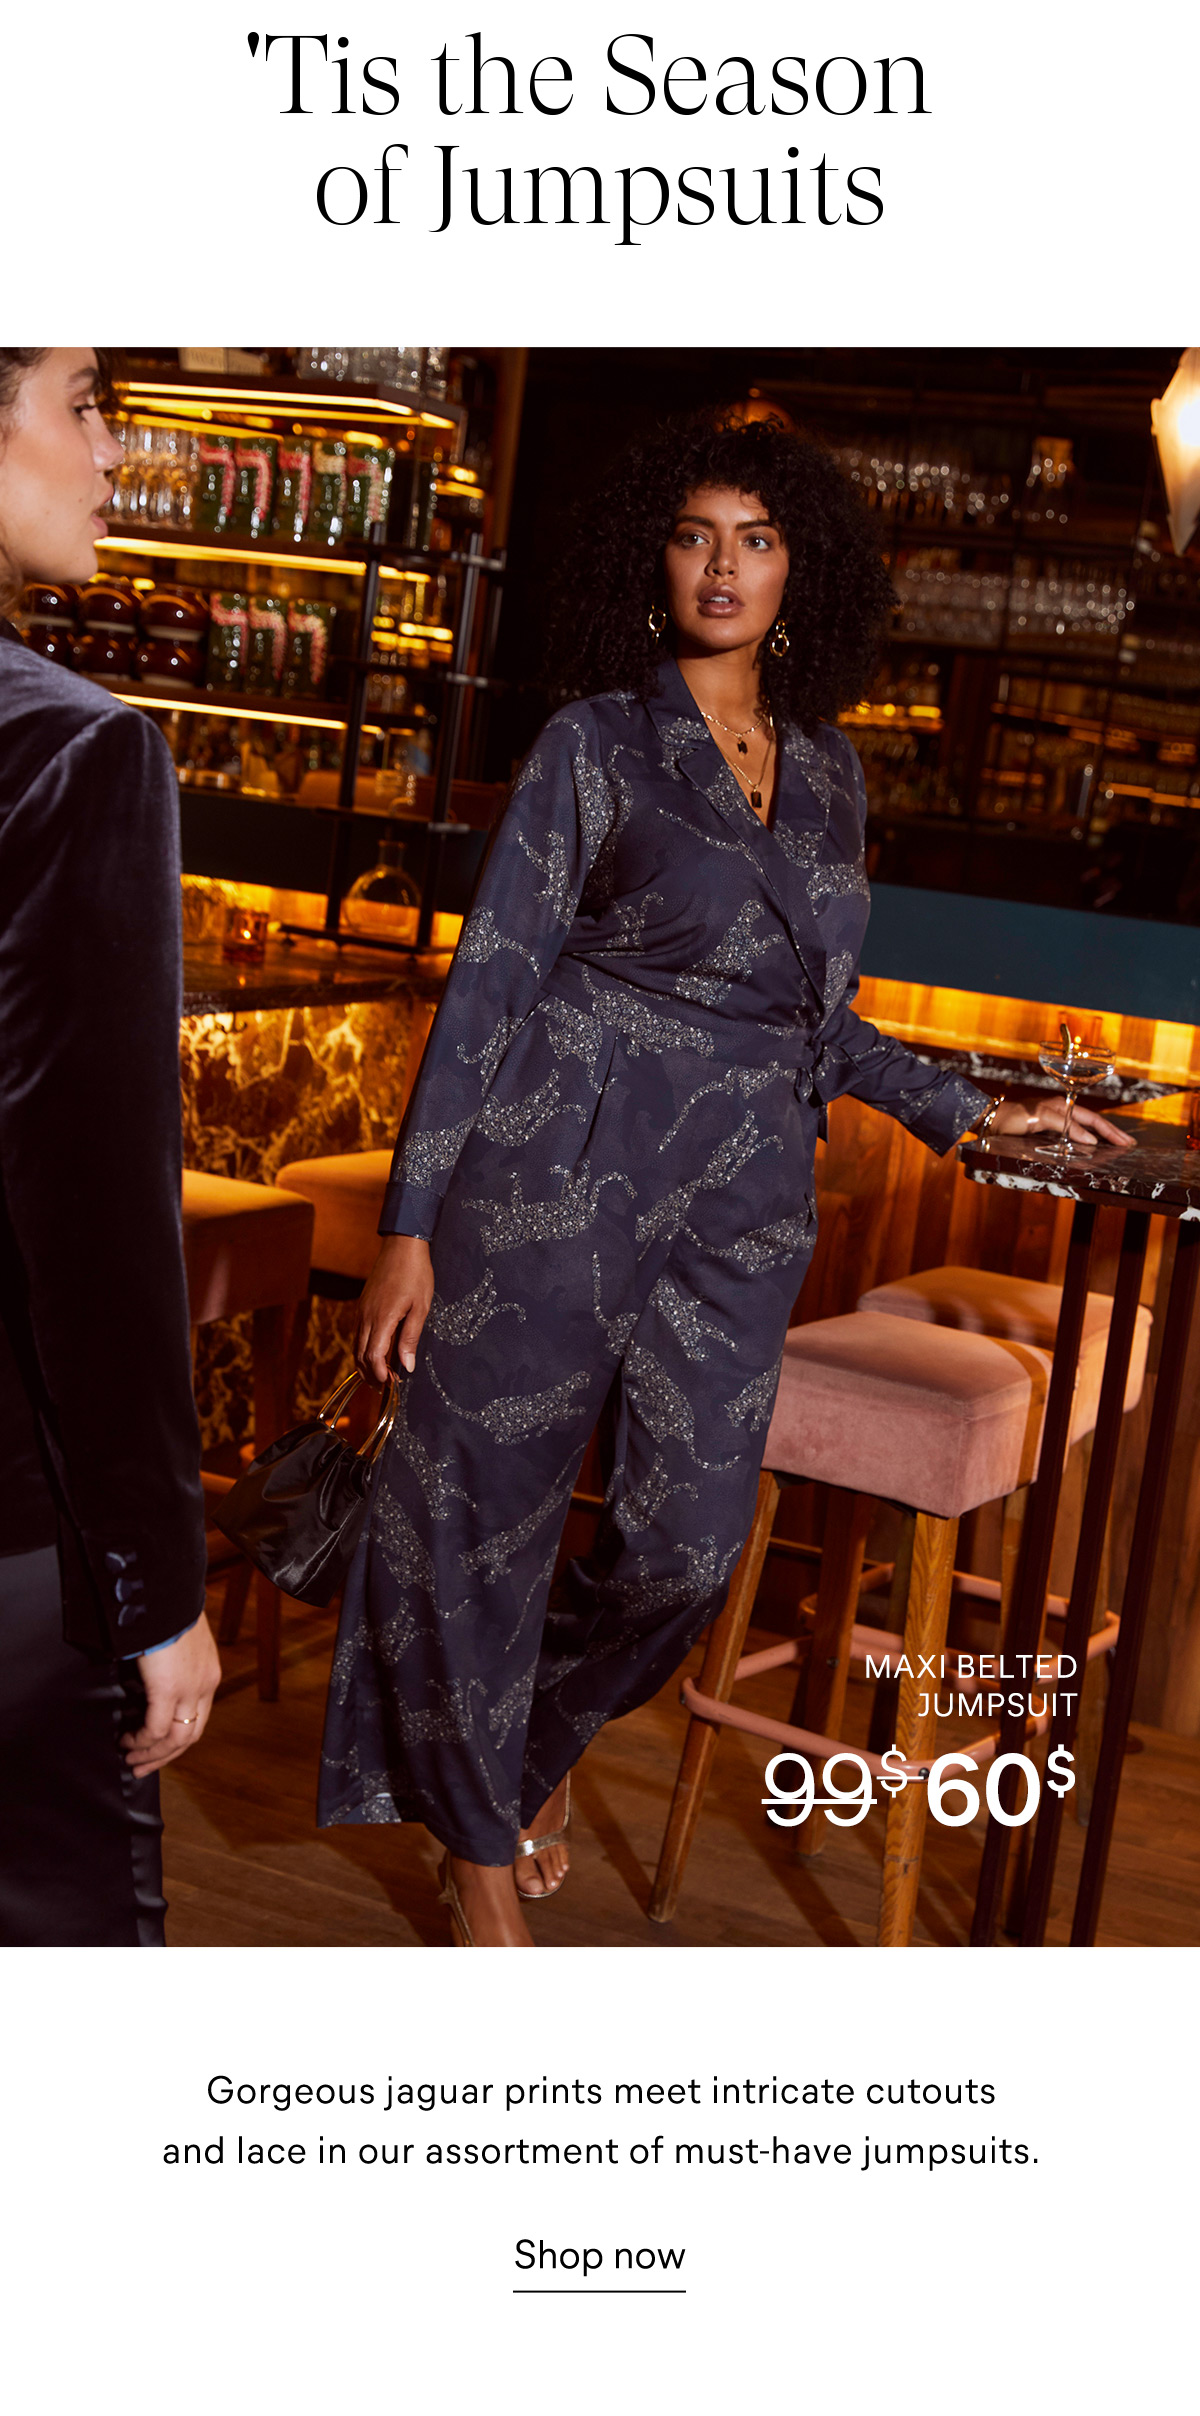 'Tis the Season of Jumpsuits Gorgeous jaguar prints meet intricate cutouts and lace in our assortment of must-have jumpsuits. Shop now